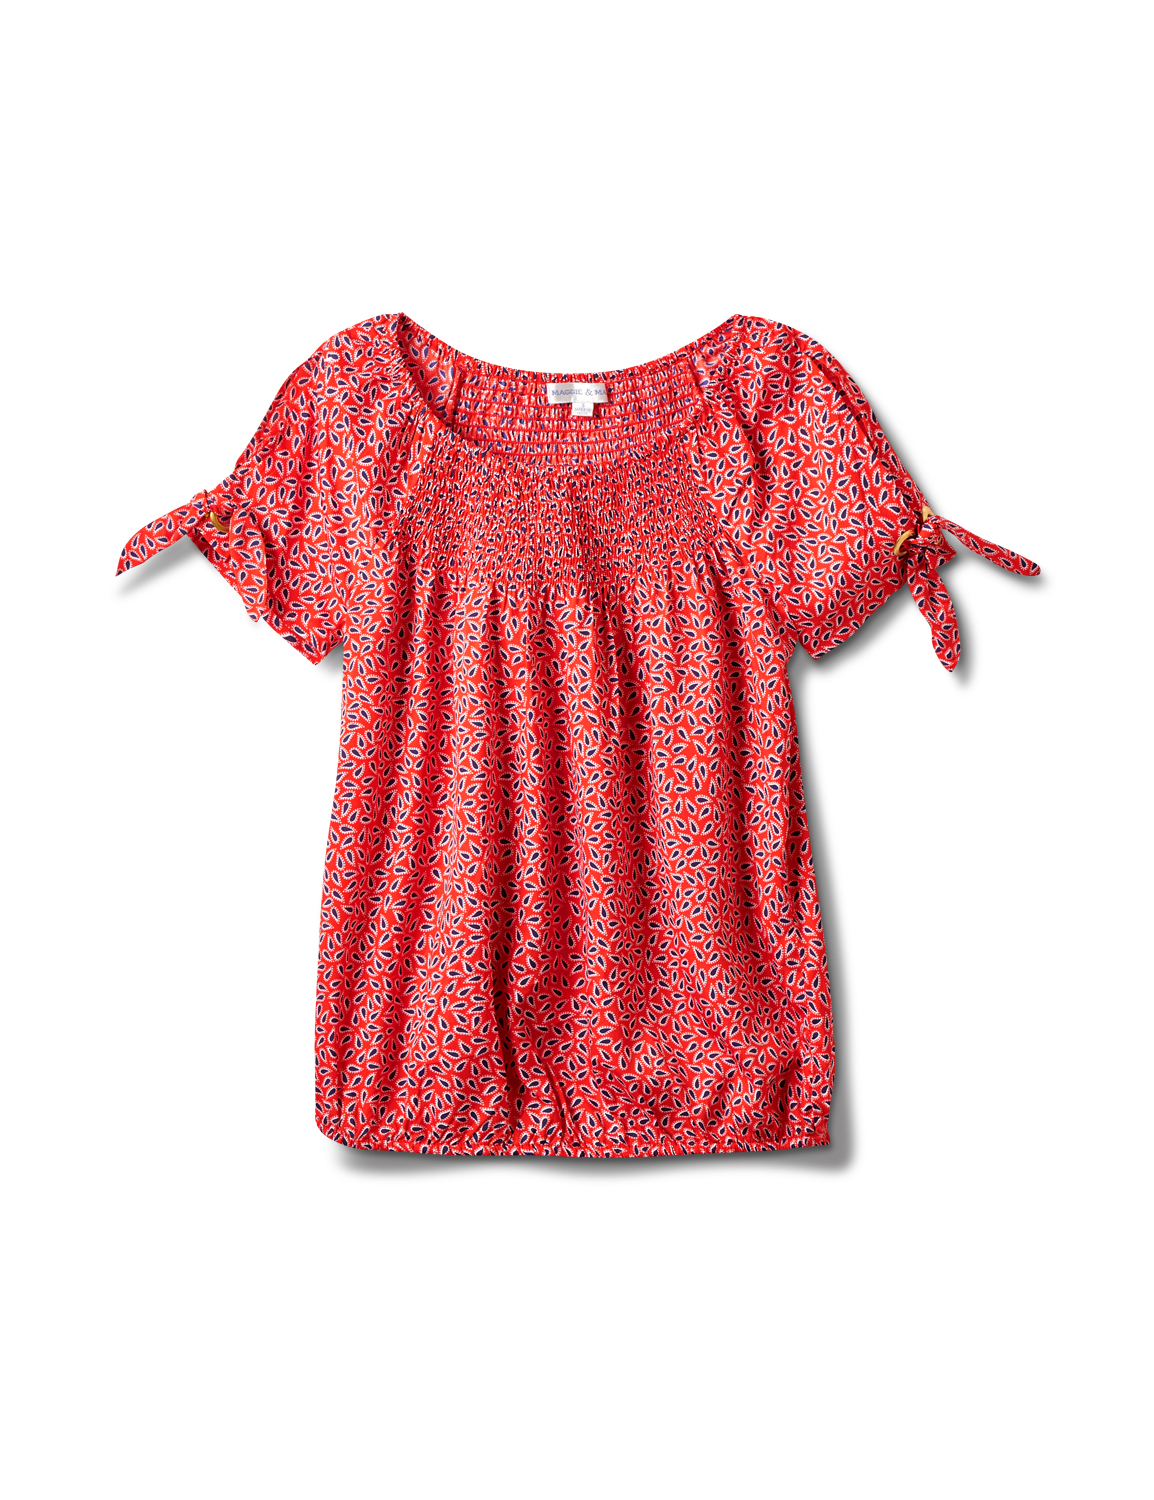 Small Pattern Smocked Grommet Top - Misses -Red - Front